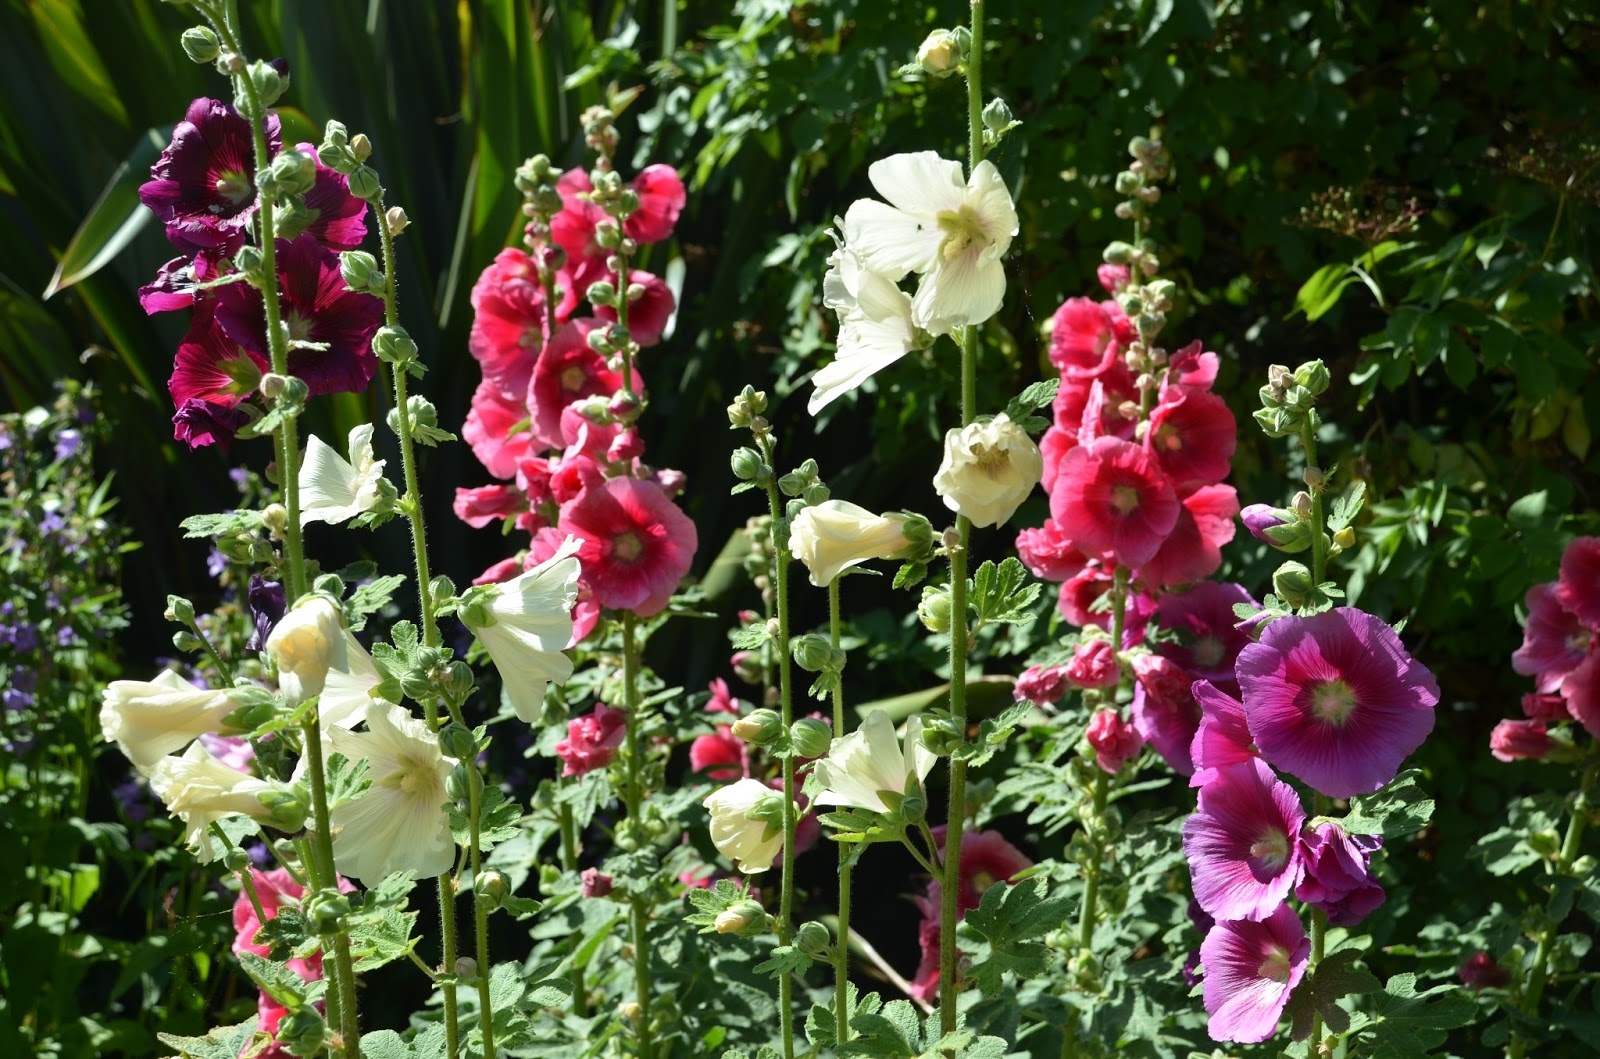 plant for rain gardens design html with How To Grow Hollyhock From Seed on Rock Garden Around Deck Done likewise Gardening From Recycled Items as well Plant of the week furthermore Rain Gardens furthermore Northwind Perennial Farm Rocks.